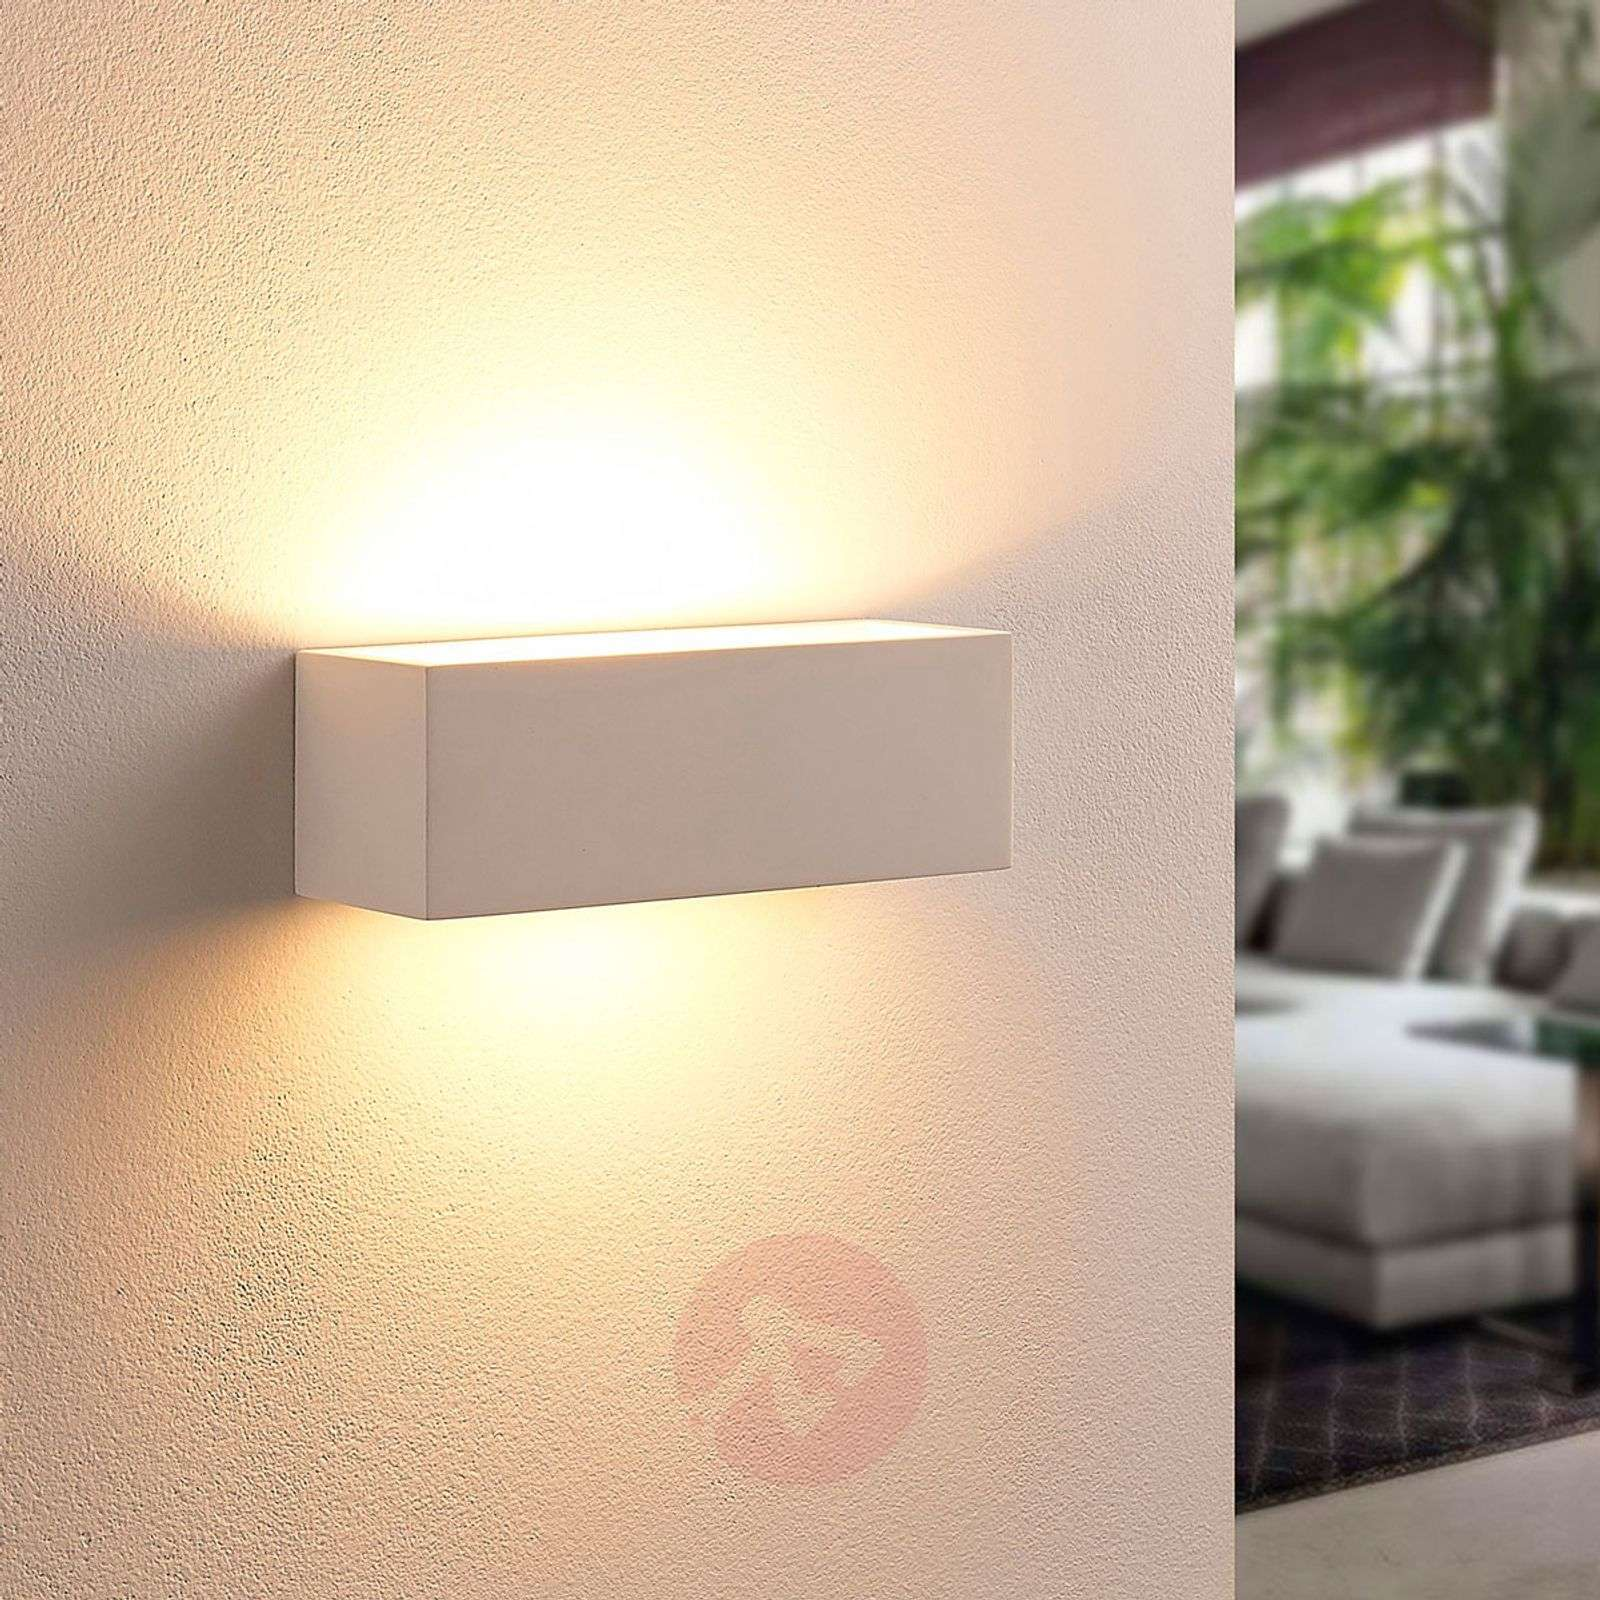 Angular LED wall lamp Tjada from plaster-9621336-02